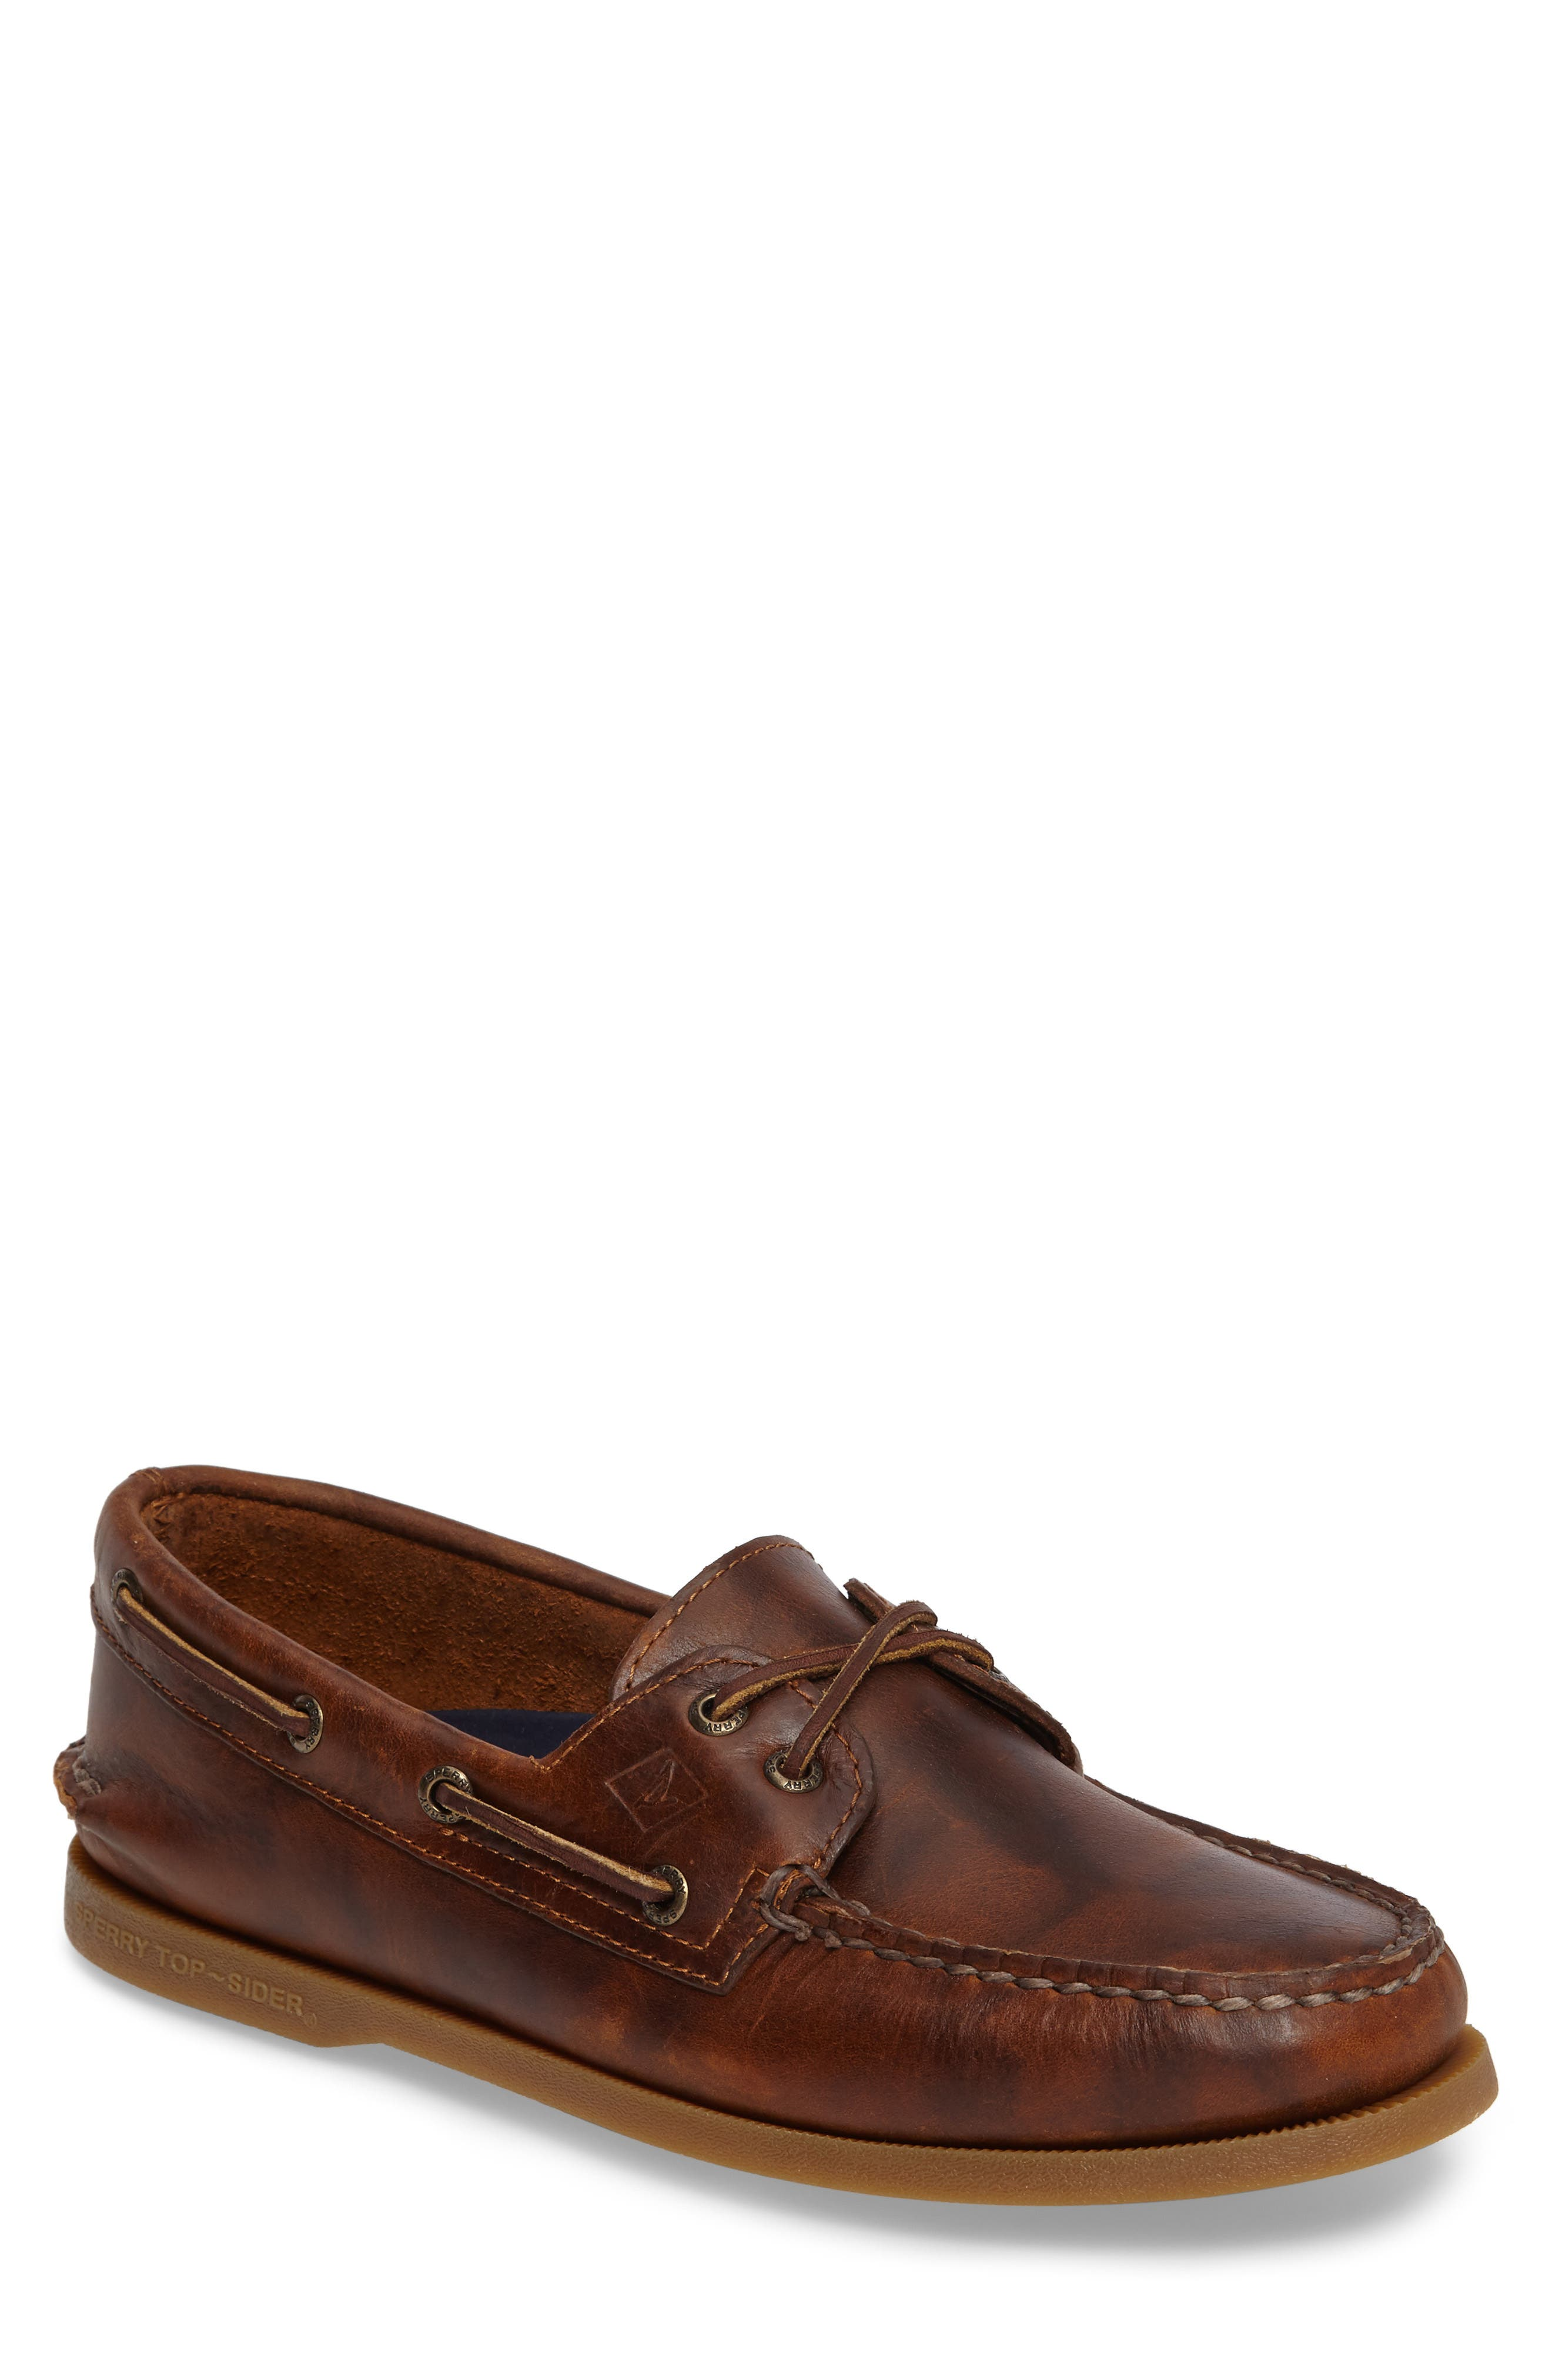 Mens Extra Wide Boat Shoes